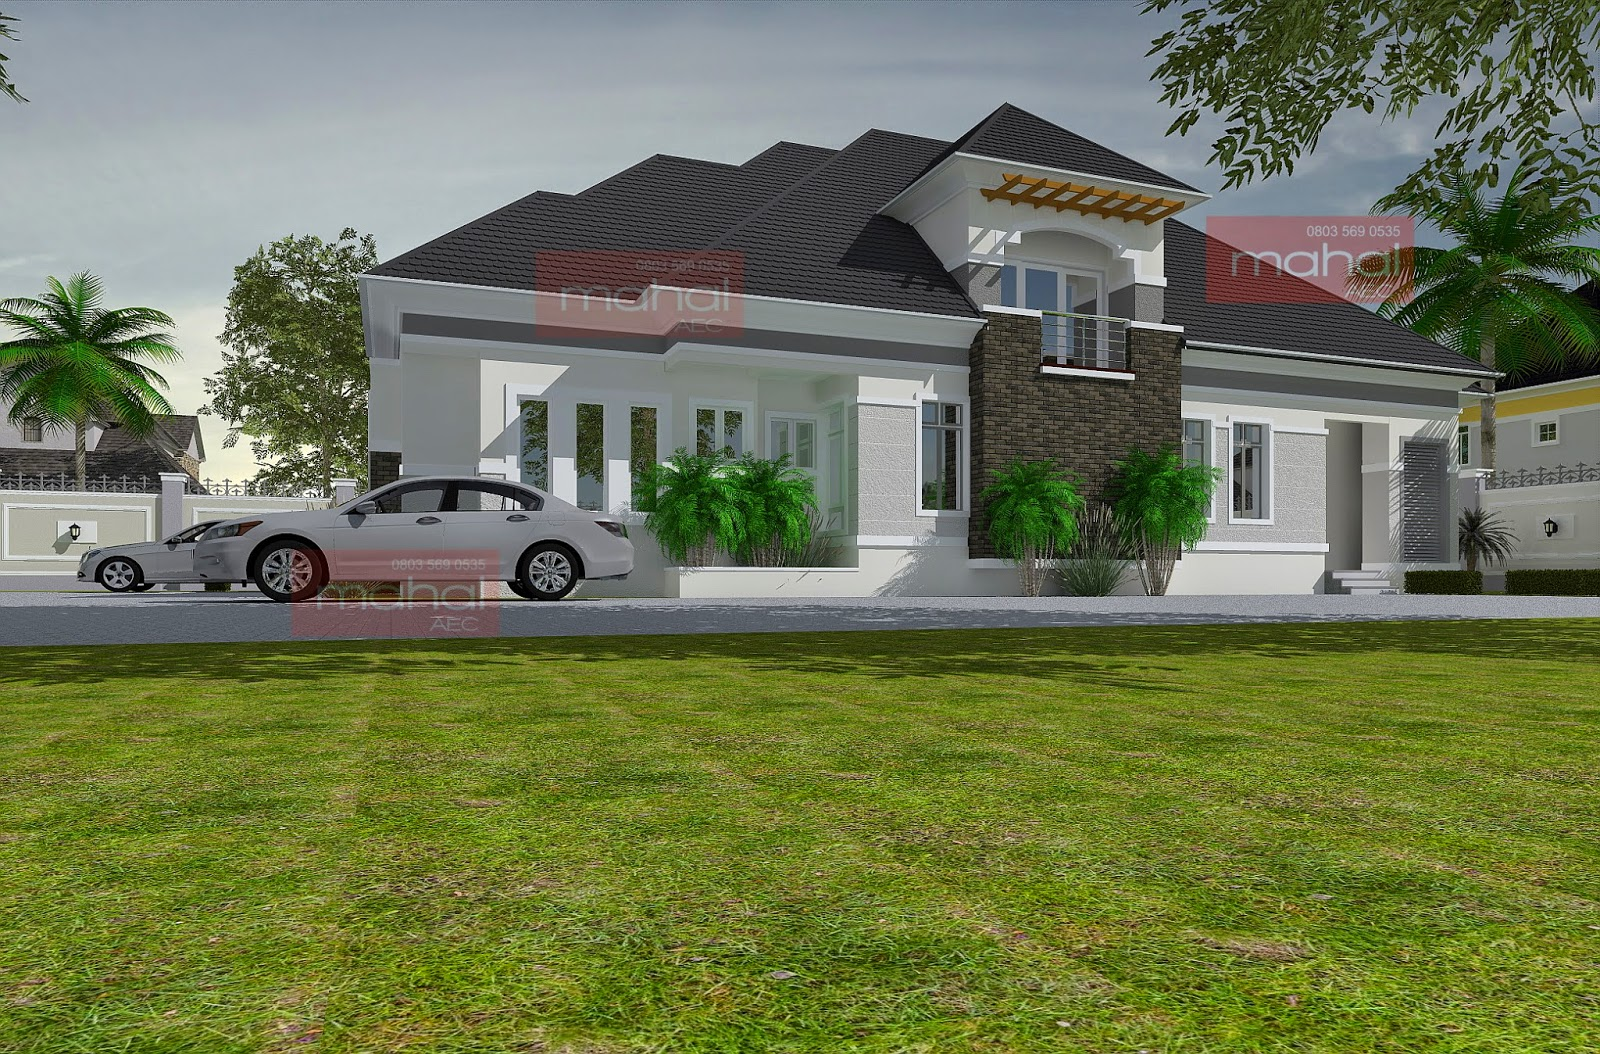 Modern Bungalow Design In Nigeria | Zion Modern House